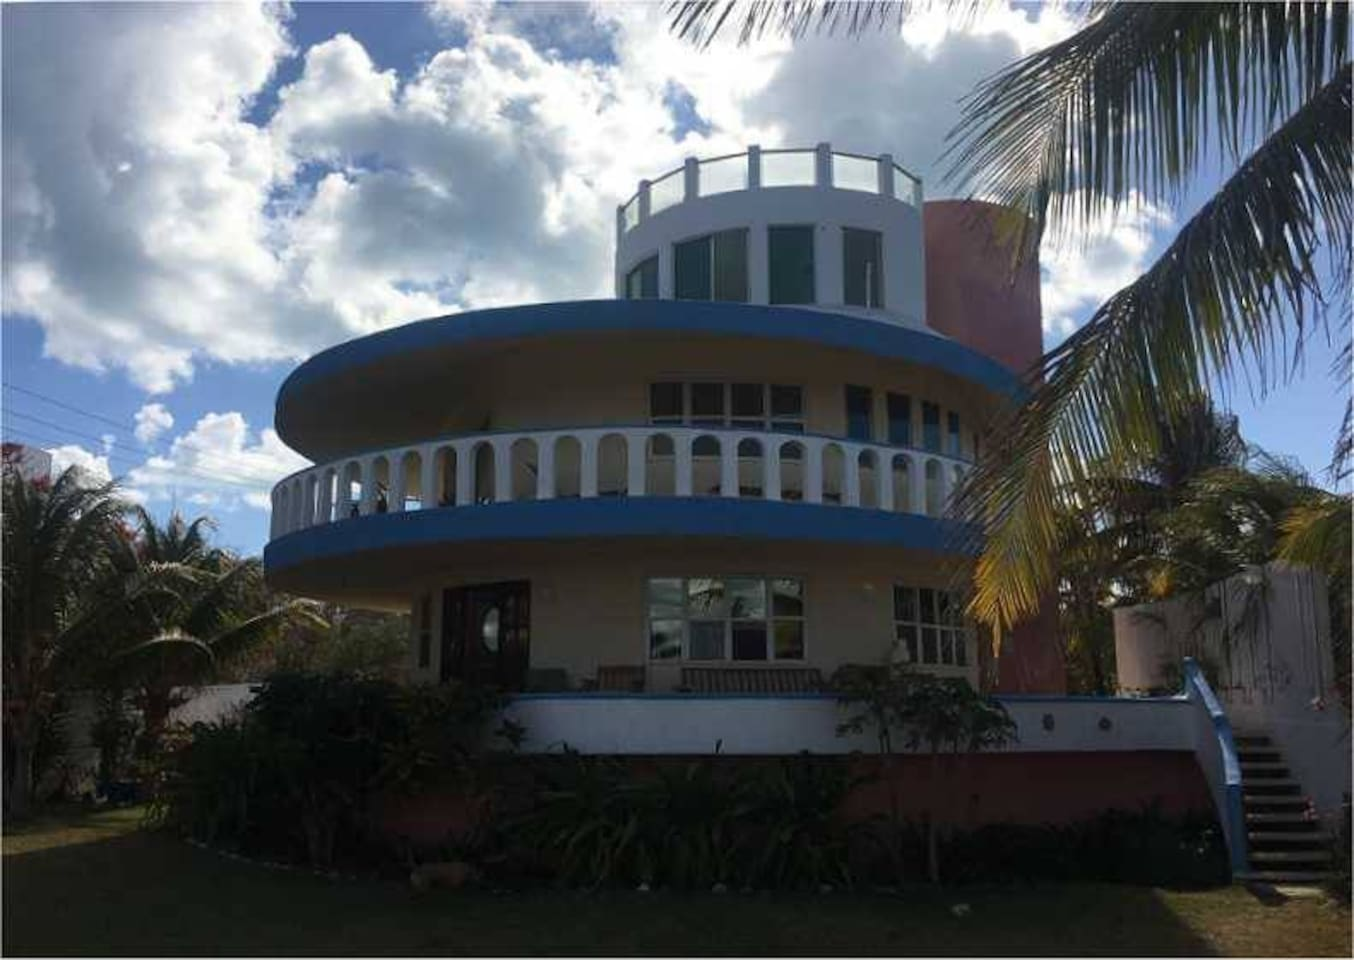 The round house on the hill, Casa Pastel was built by dreamers for dreamers.